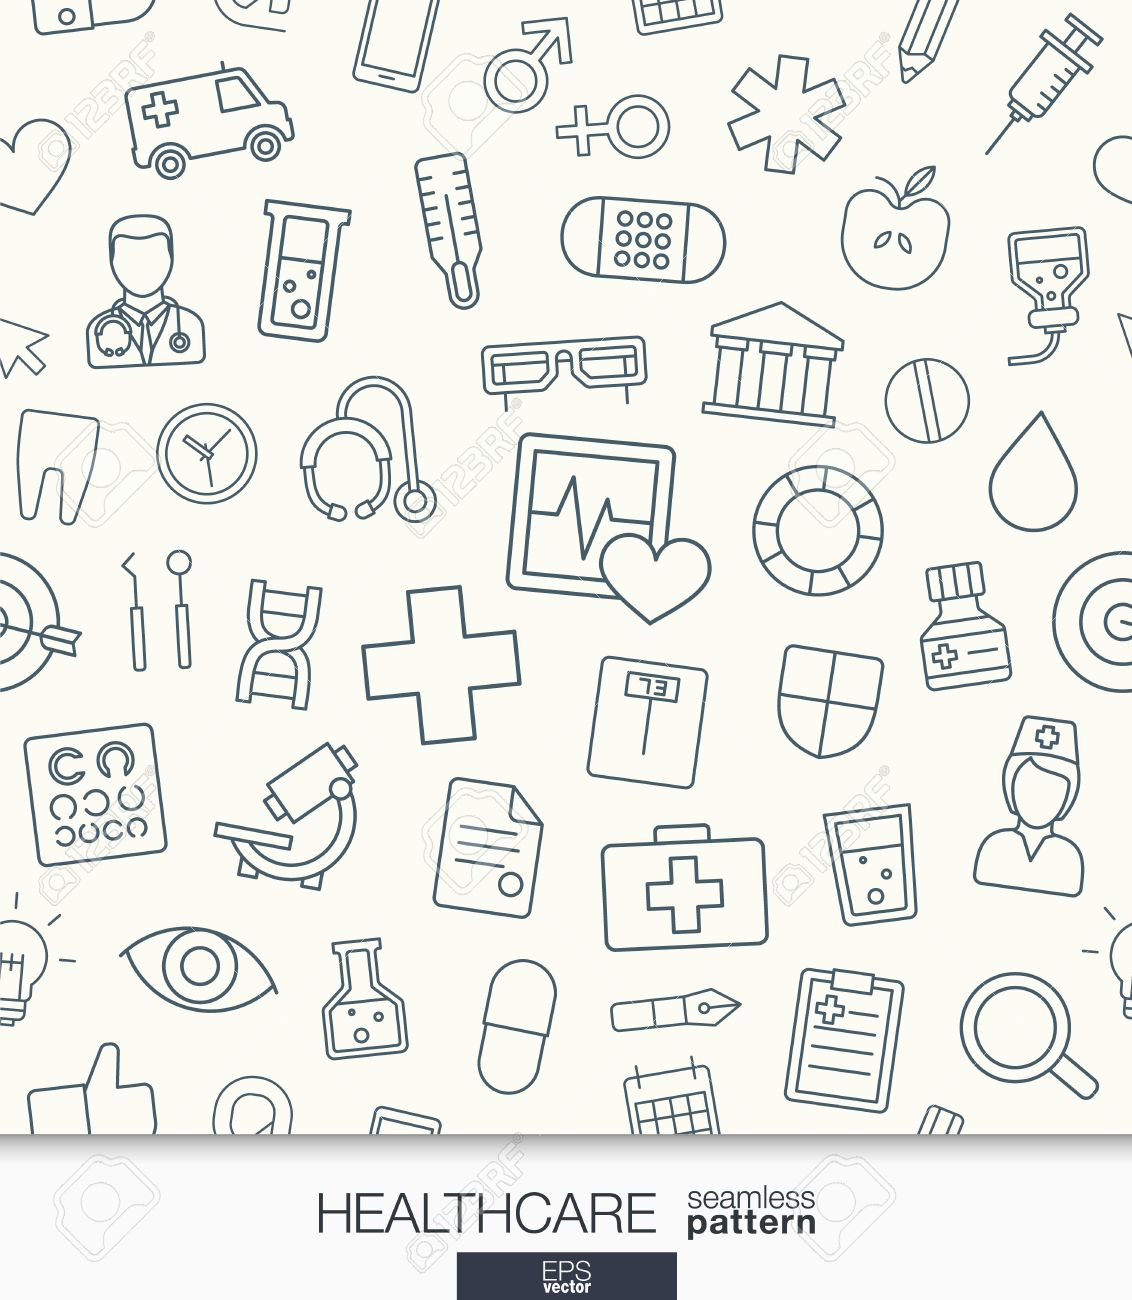 Healthcare Wallpaper Medical Seamless Pattern Tiling Textures 1132x1300